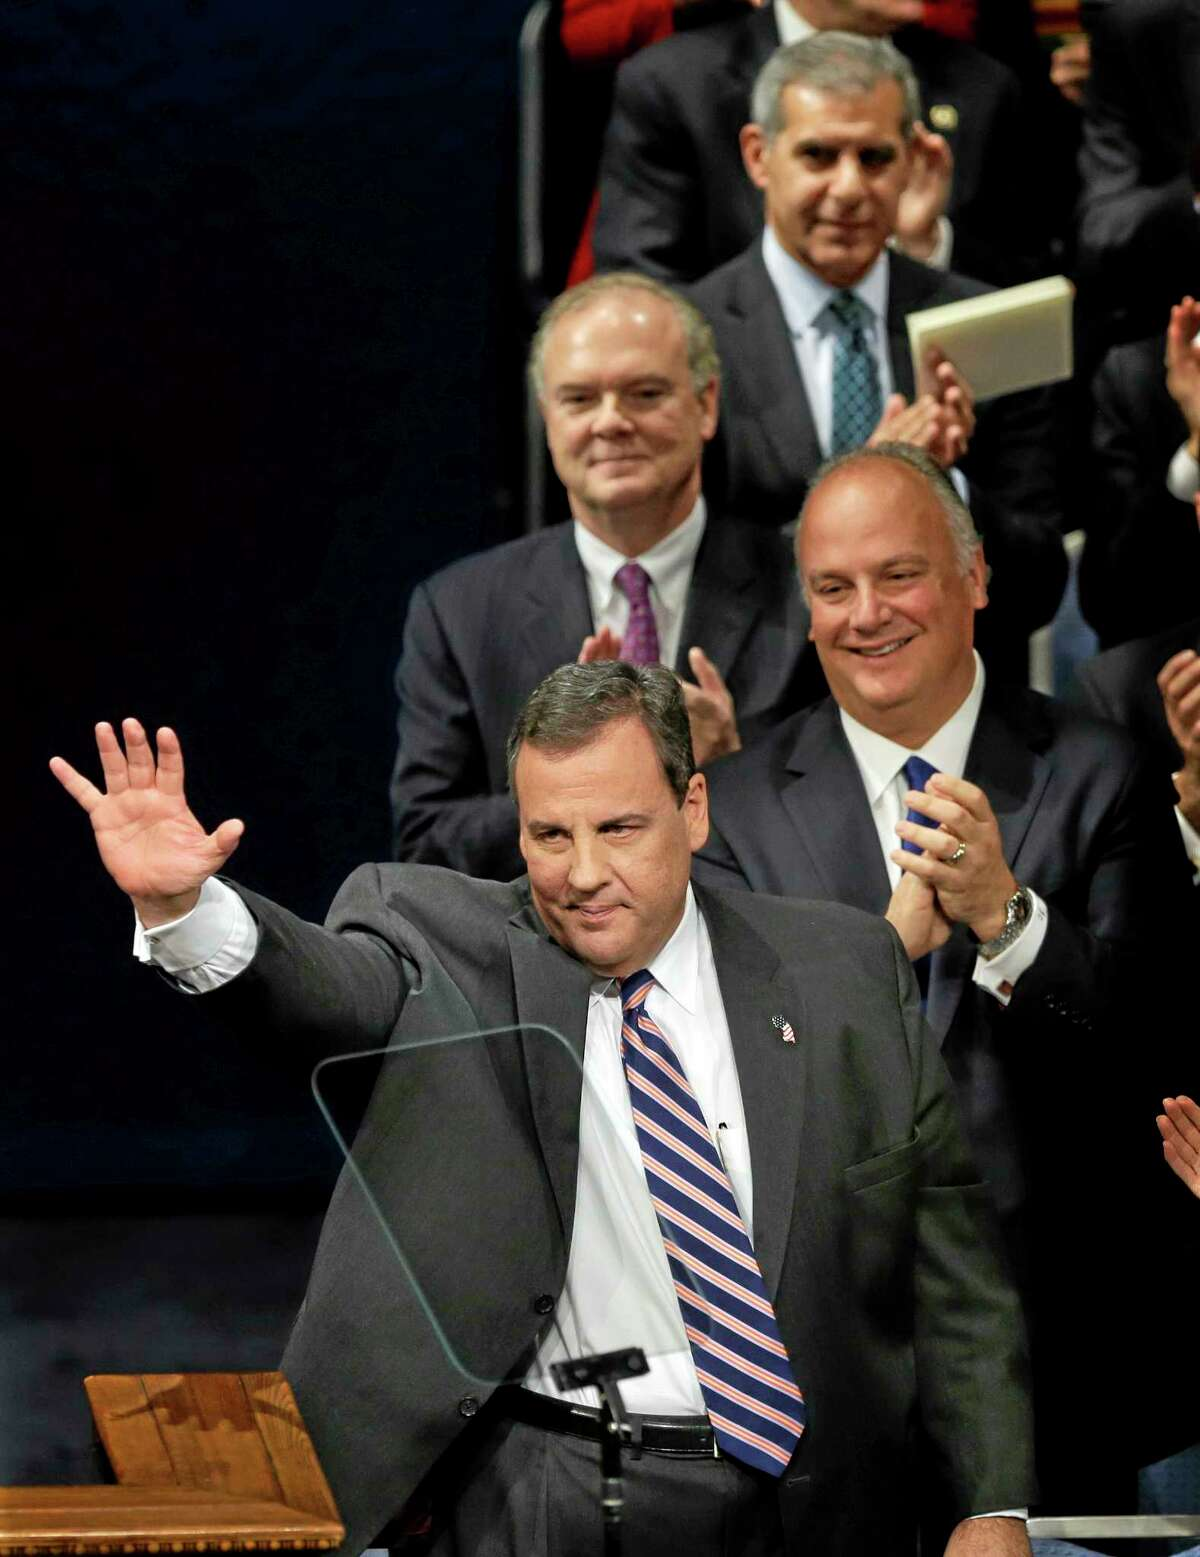 In this photograph taken Tuesday, Jan. 21, 2014, as his brother Todd Christie, right, Bob Martin, back left, Commissioner of the New Jersey Department of Environmental Protection and New Jersey Sen. Joseph M. Kyrillos, Jr., R-Middletown, look on, New Jersey Gov. Chris Christie waves to a gathering after being sworn in for his second term in Trenton, N.J. Two recent polls show a traffic jam scandal taking a toll on Gov. Chris Christie's popularity and national political ambitions. A Rutgers-Eagleton poll released Wednesday, Jan. 22, 2014, shows the governor's job performance and approval rating dipping. And a Quinnipiac University poll released Tuesday found a third of respondents less likely to vote for Christie for president. (AP Photo/Mel Evans)